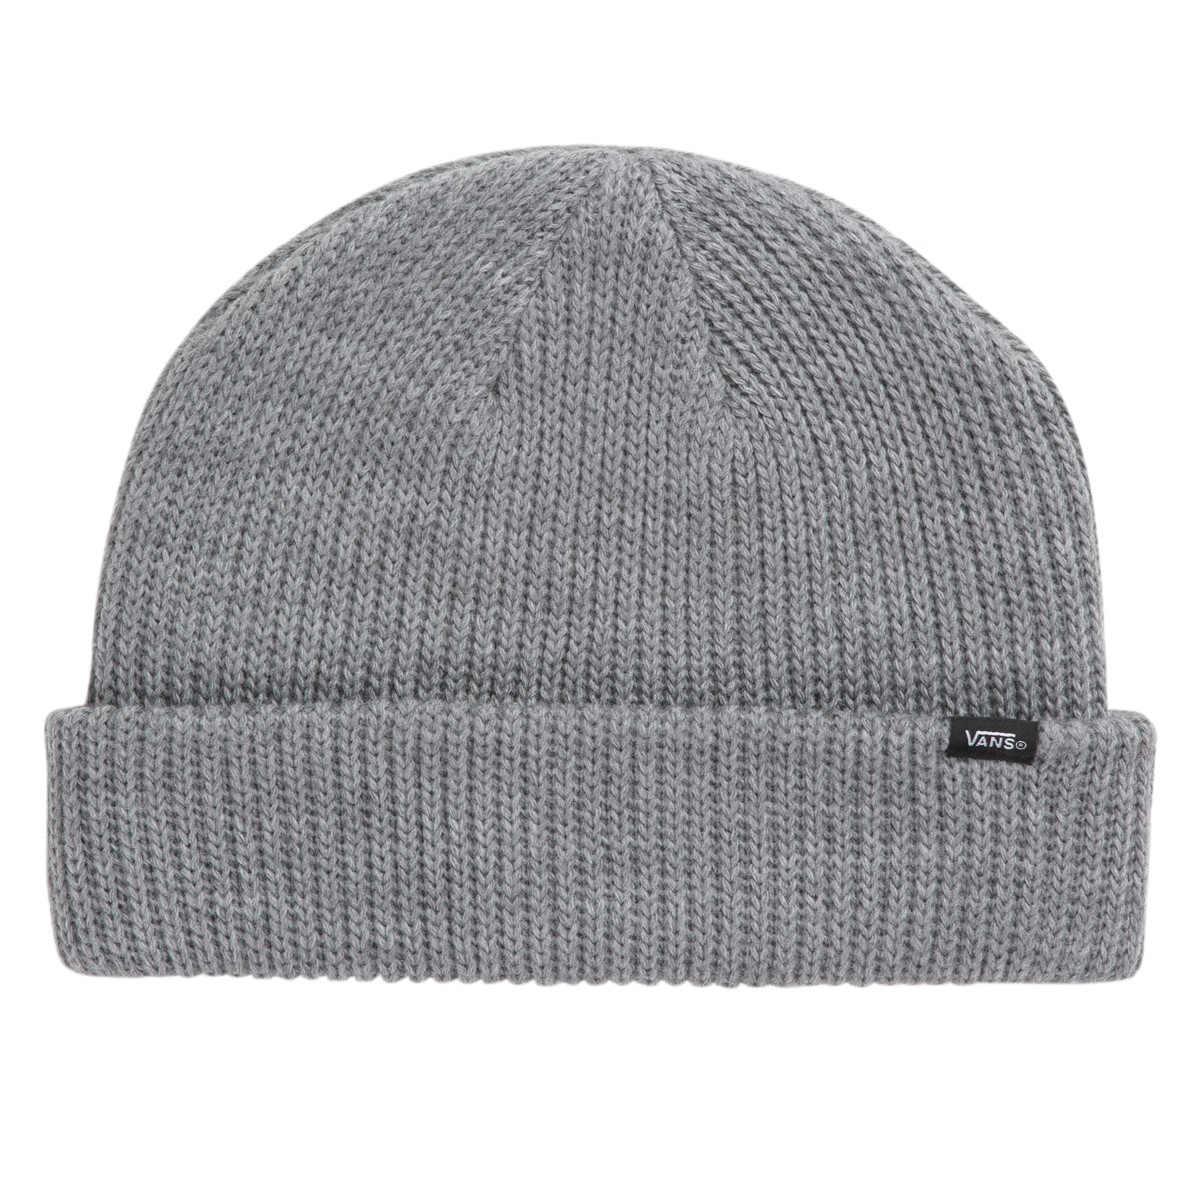 Core Basics Beanie in Grey